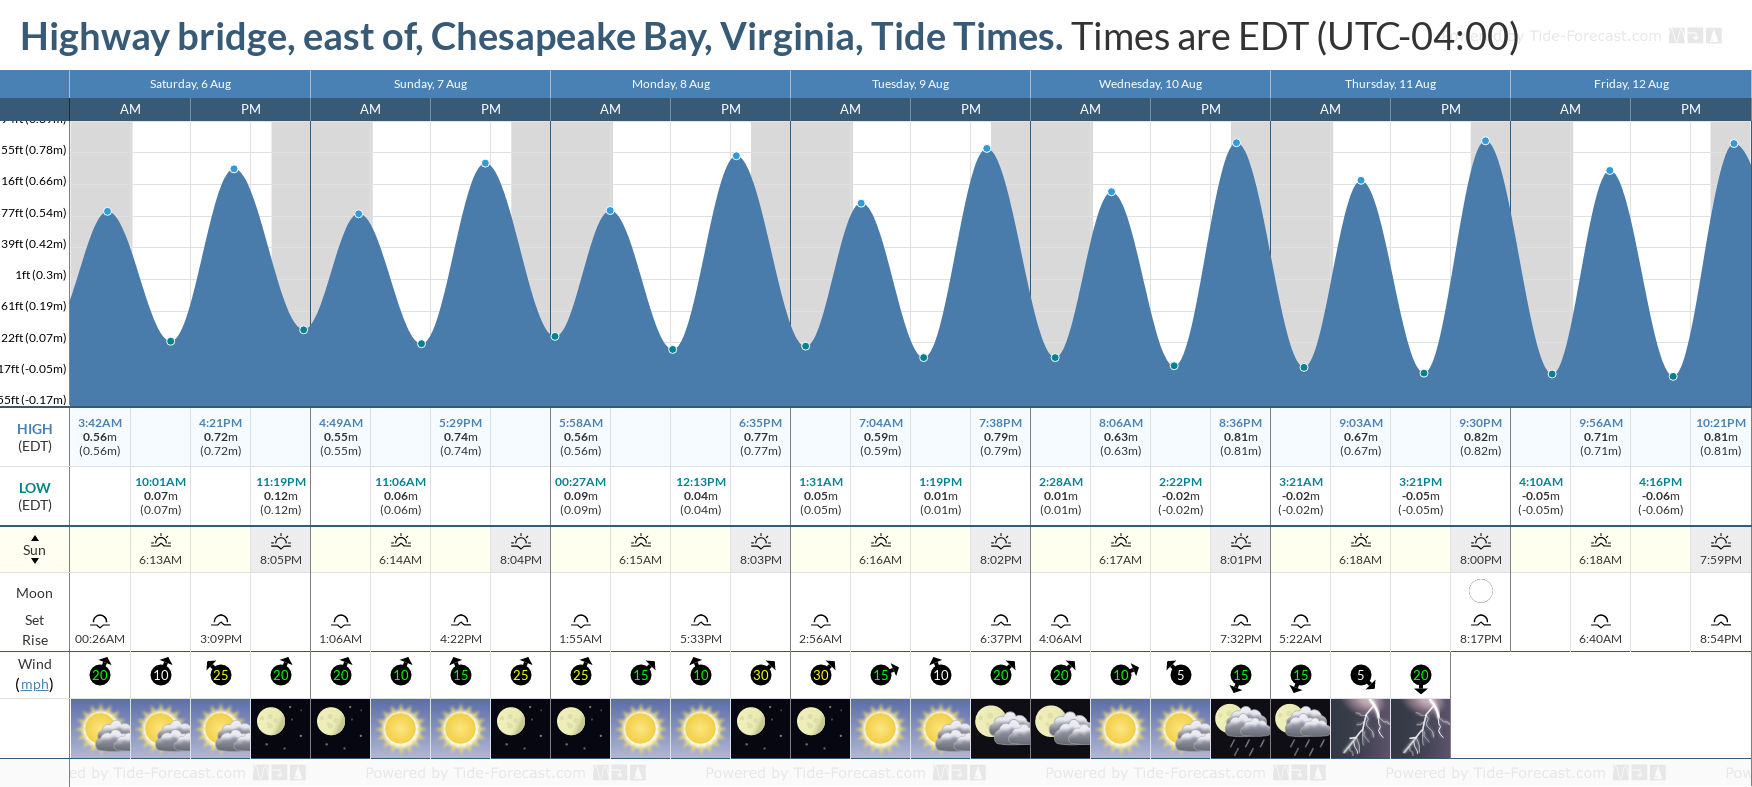 Highway bridge, east of, Chesapeake Bay, Virginia Tide Chart including high and low tide tide times for the next 7 days